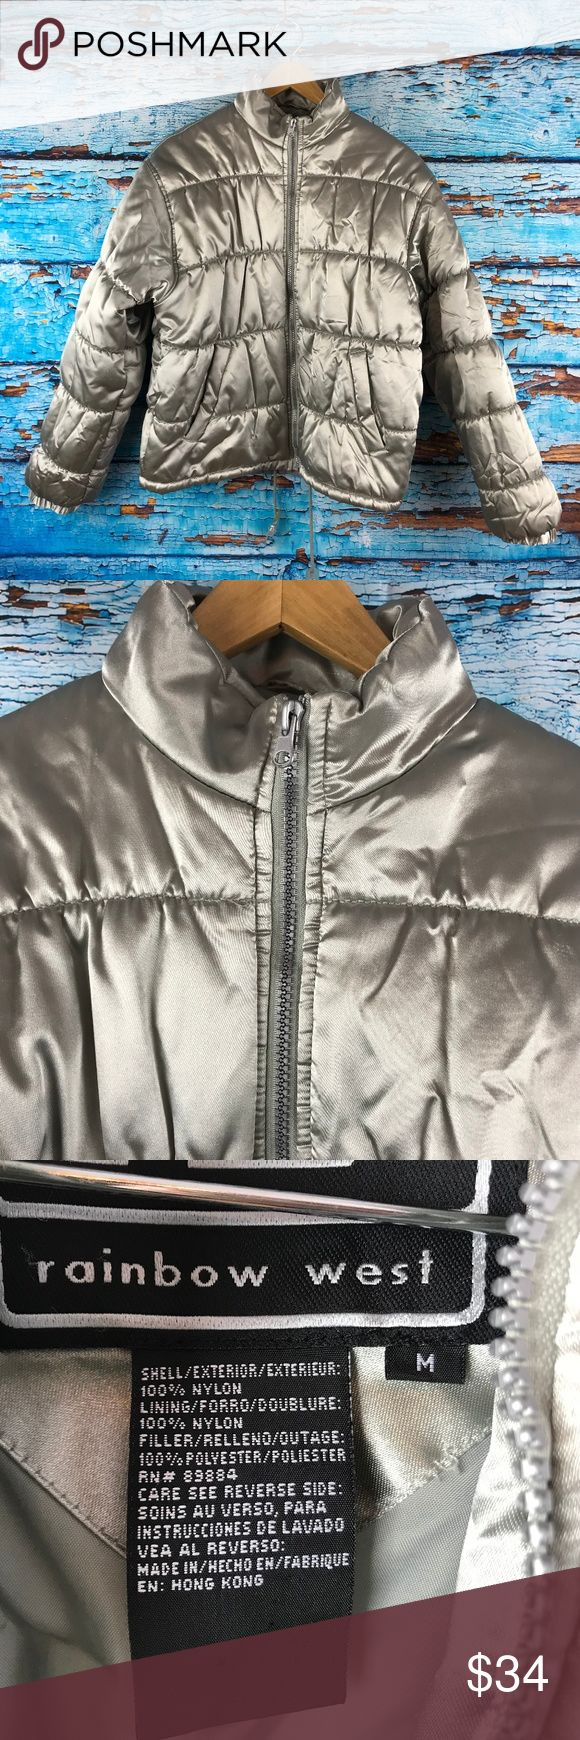 Rainbow West Silver Zip Up Puffer Jacket Excellent pre-owned with no stains, tears, or flaws       Measurements:                           Pit to Pit (in inches): 20  Length (in inches): 24 Rainbow West Jackets & Coats Puffers